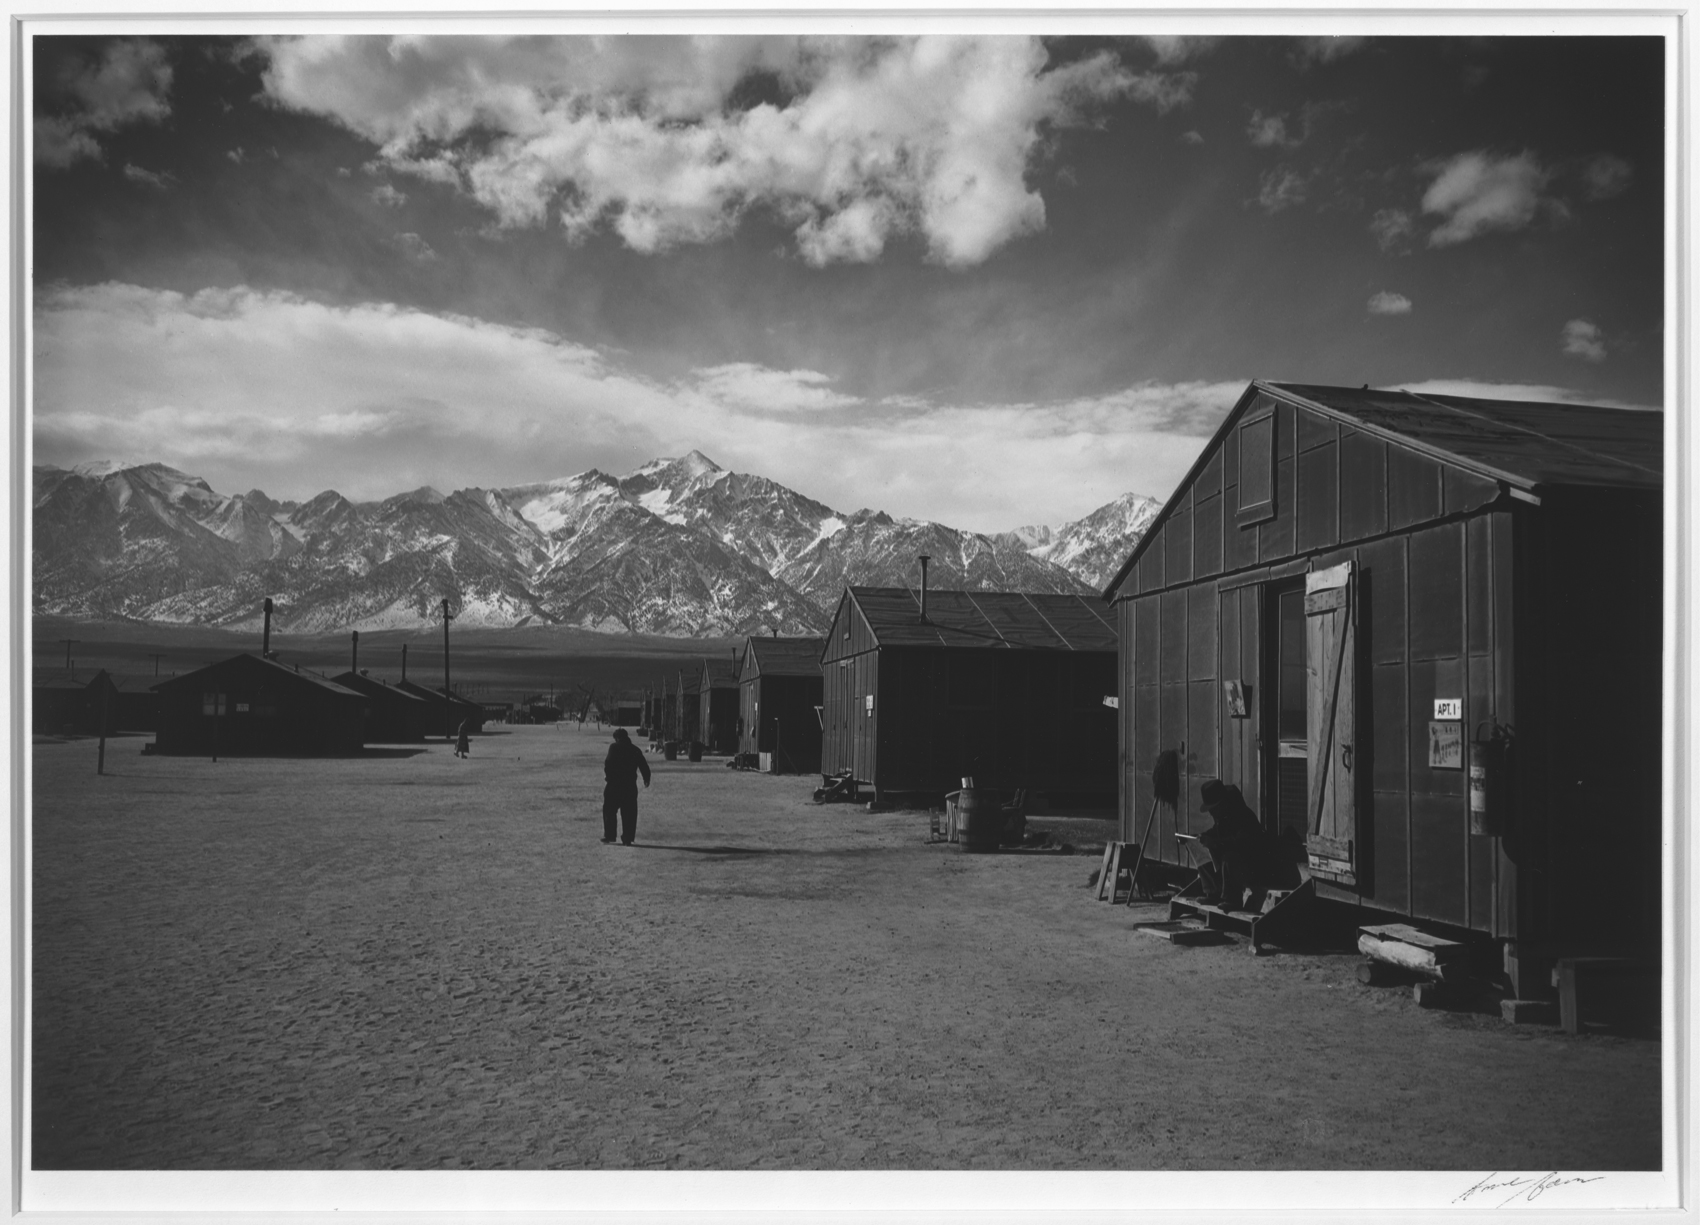 Famed landscape photographer ansel adams dramatic photos of a japanese american internment camp